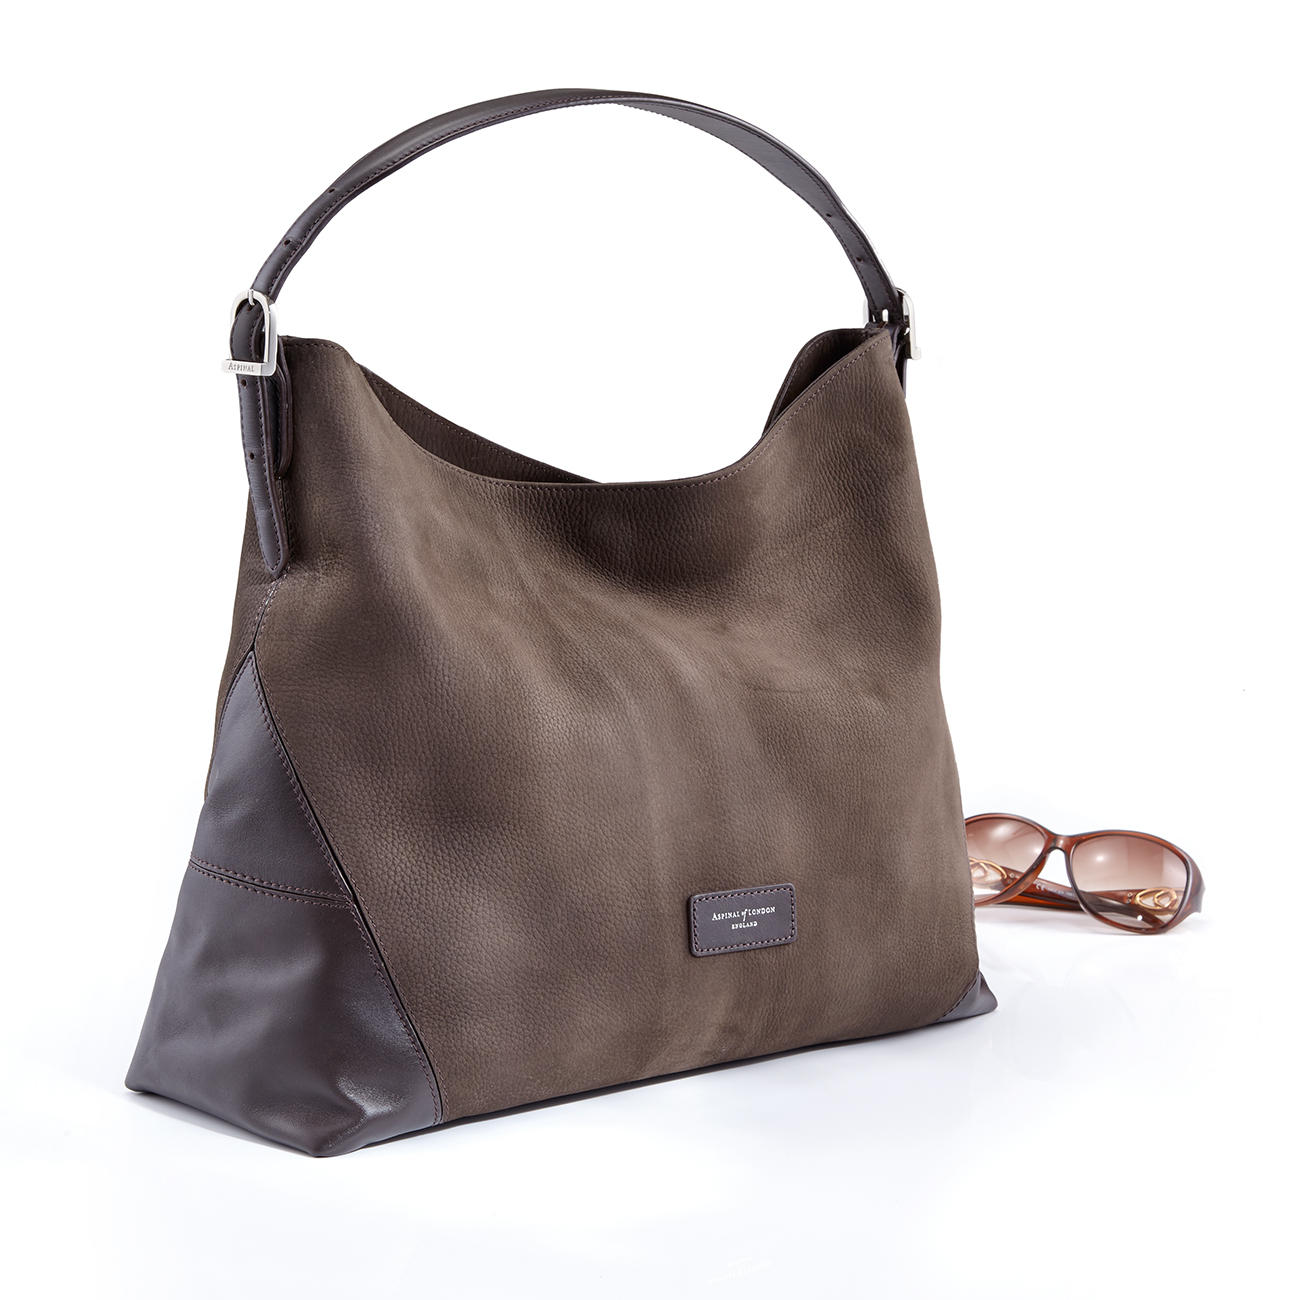 Hobo Bags: Free Shipping on orders over $45 at taradsod.tk - Your Online Shop By Style Store! Get 5% in rewards with Club O! DASEIN Ultra Lightweight Stylish Casual Soft Water Wash Faux Leather Hobo Bag/Shoulder Bag with Twisted/Braided wave strand deco. SALE ends soon ends in 2 hours. Quick View.